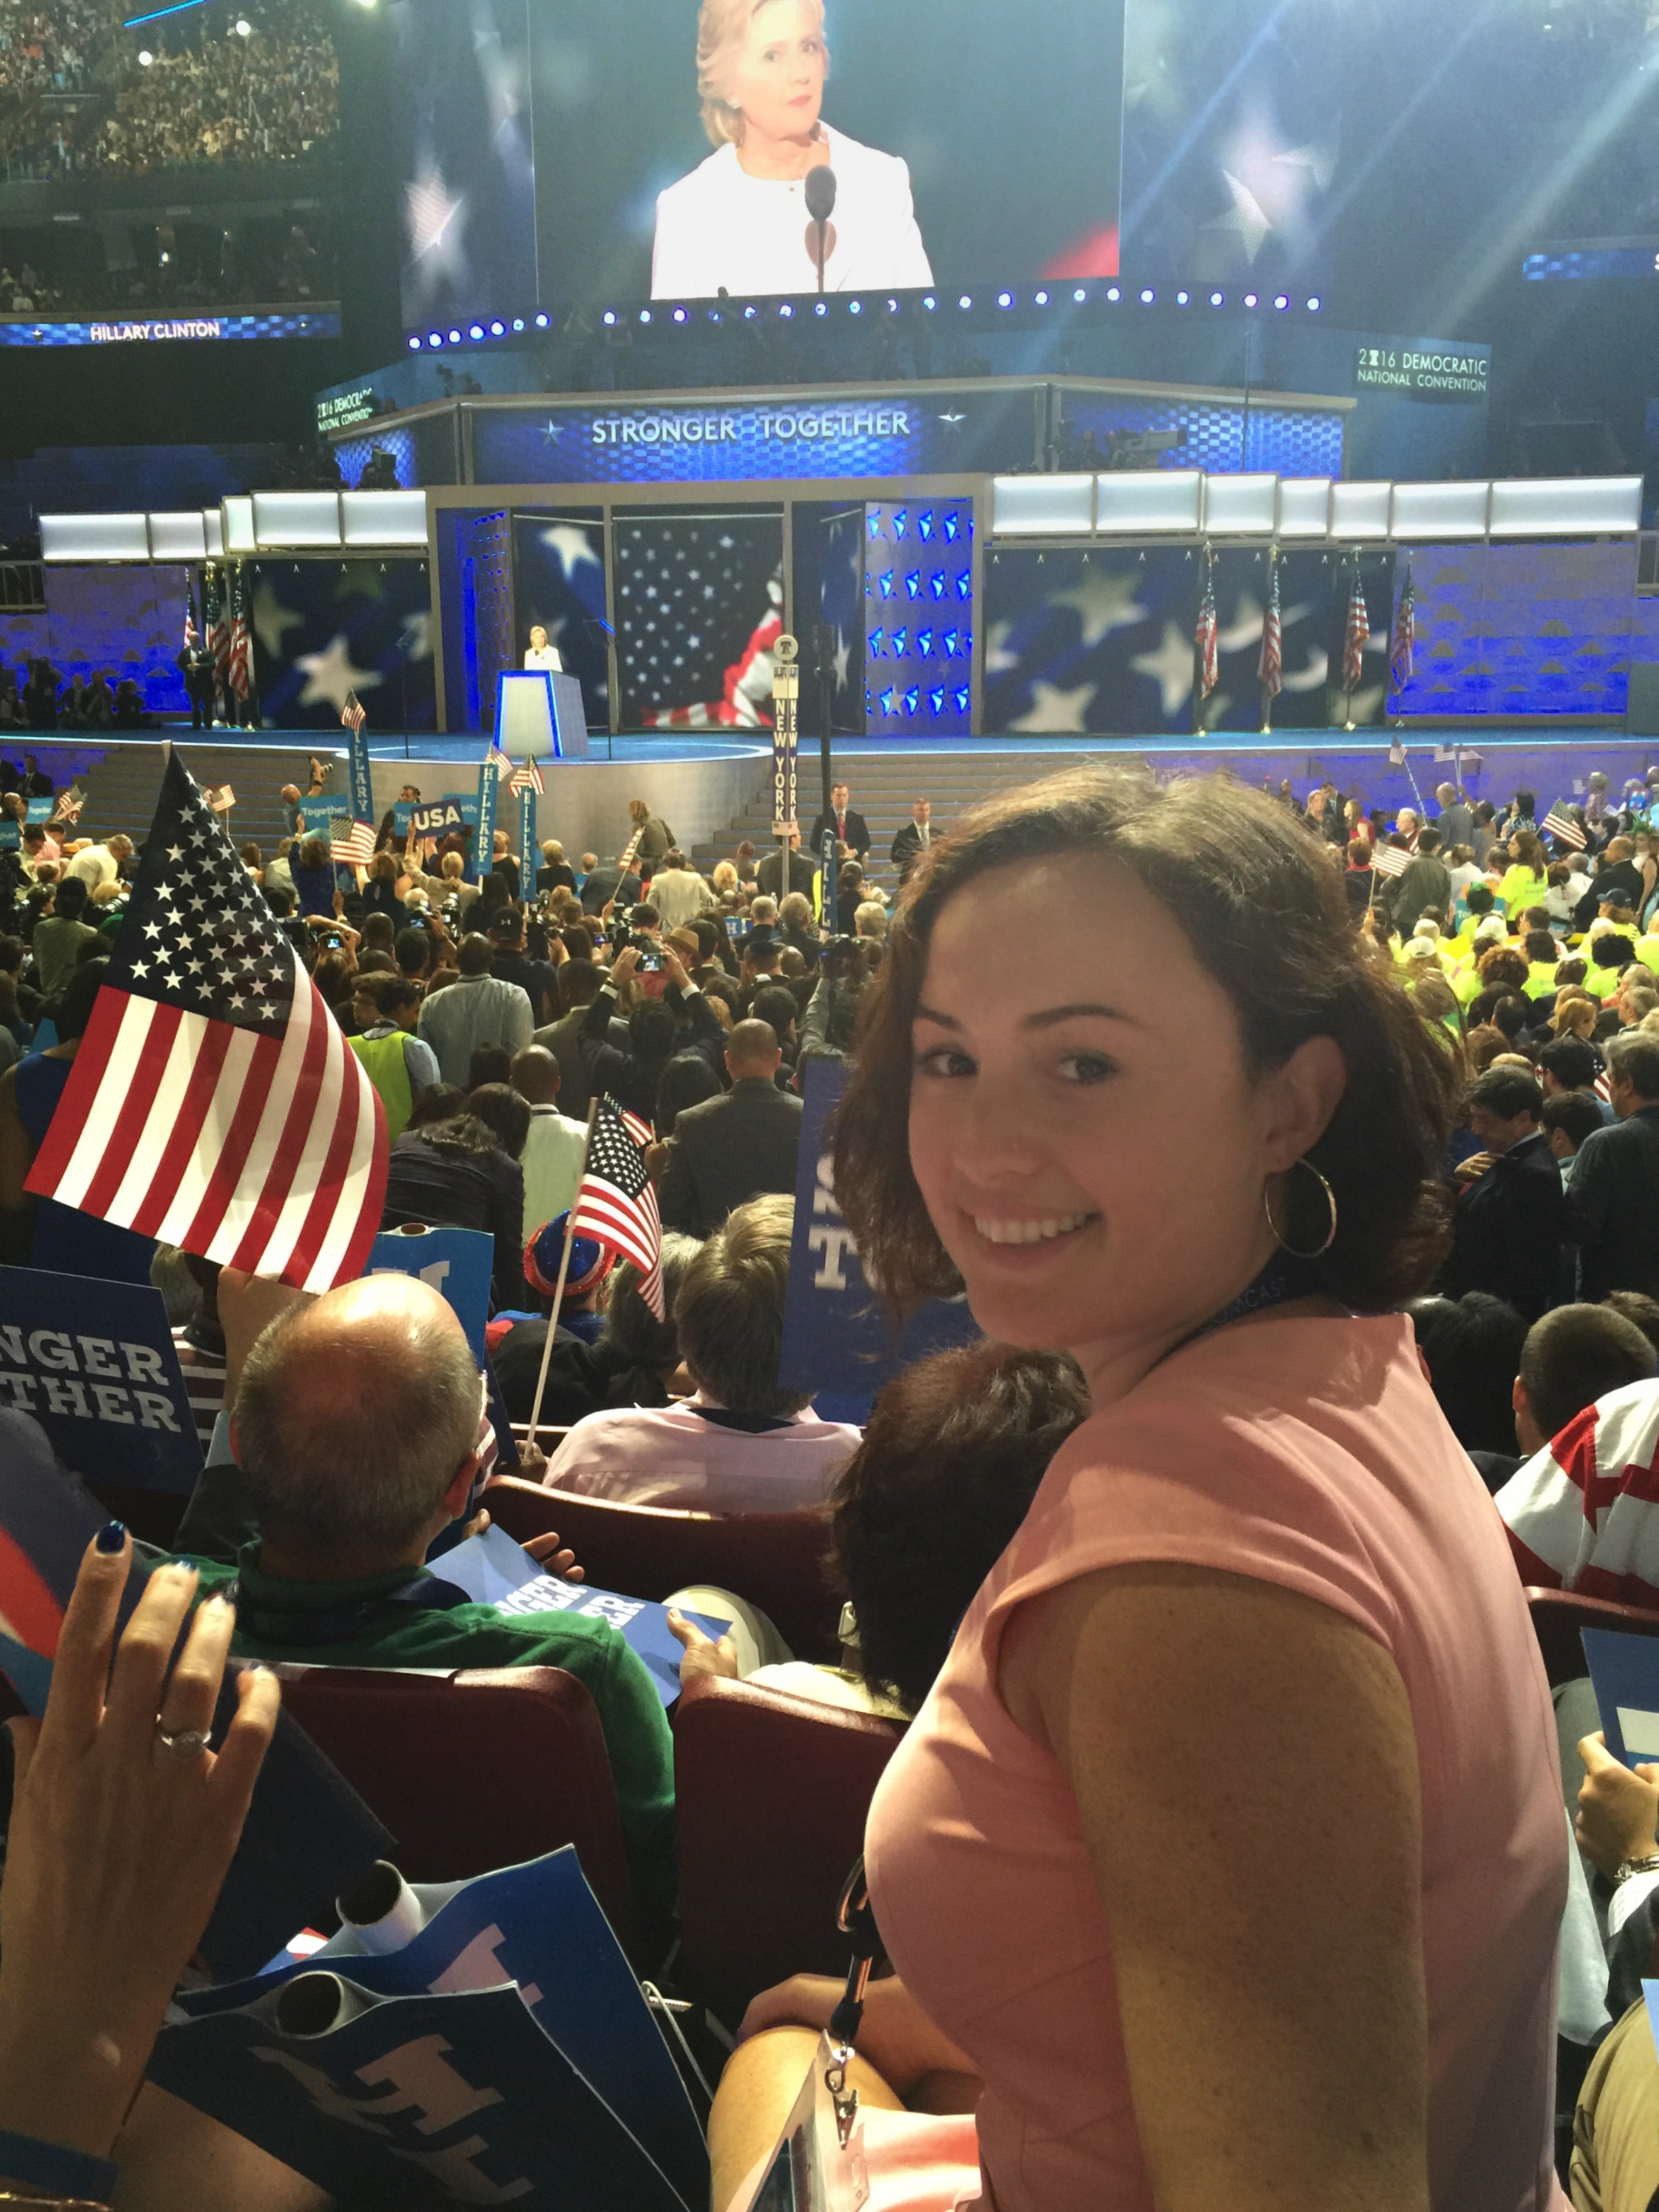 Lara Hughes on the convention floor, turned to the camera with Hillary Clinton on the stage and on the big screen in the background.